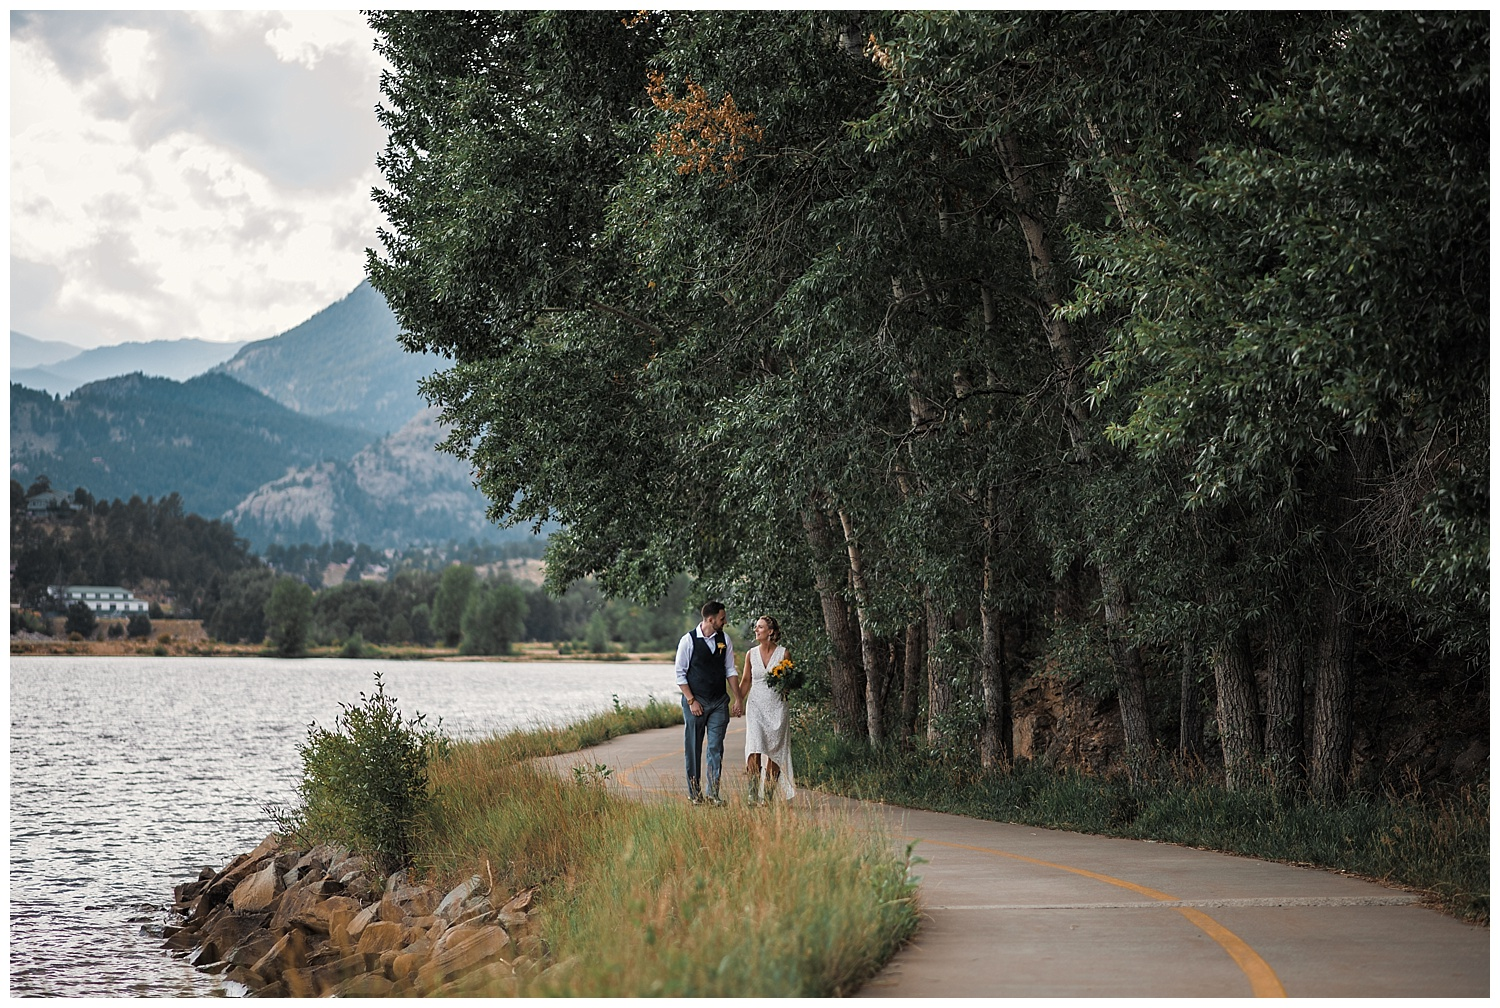 bride and groom portraits at estes park resort, rocky mountain elopement photographer, rocky mountain wedding photographer, colorado wedding photographer, Estes Park wedding photographer